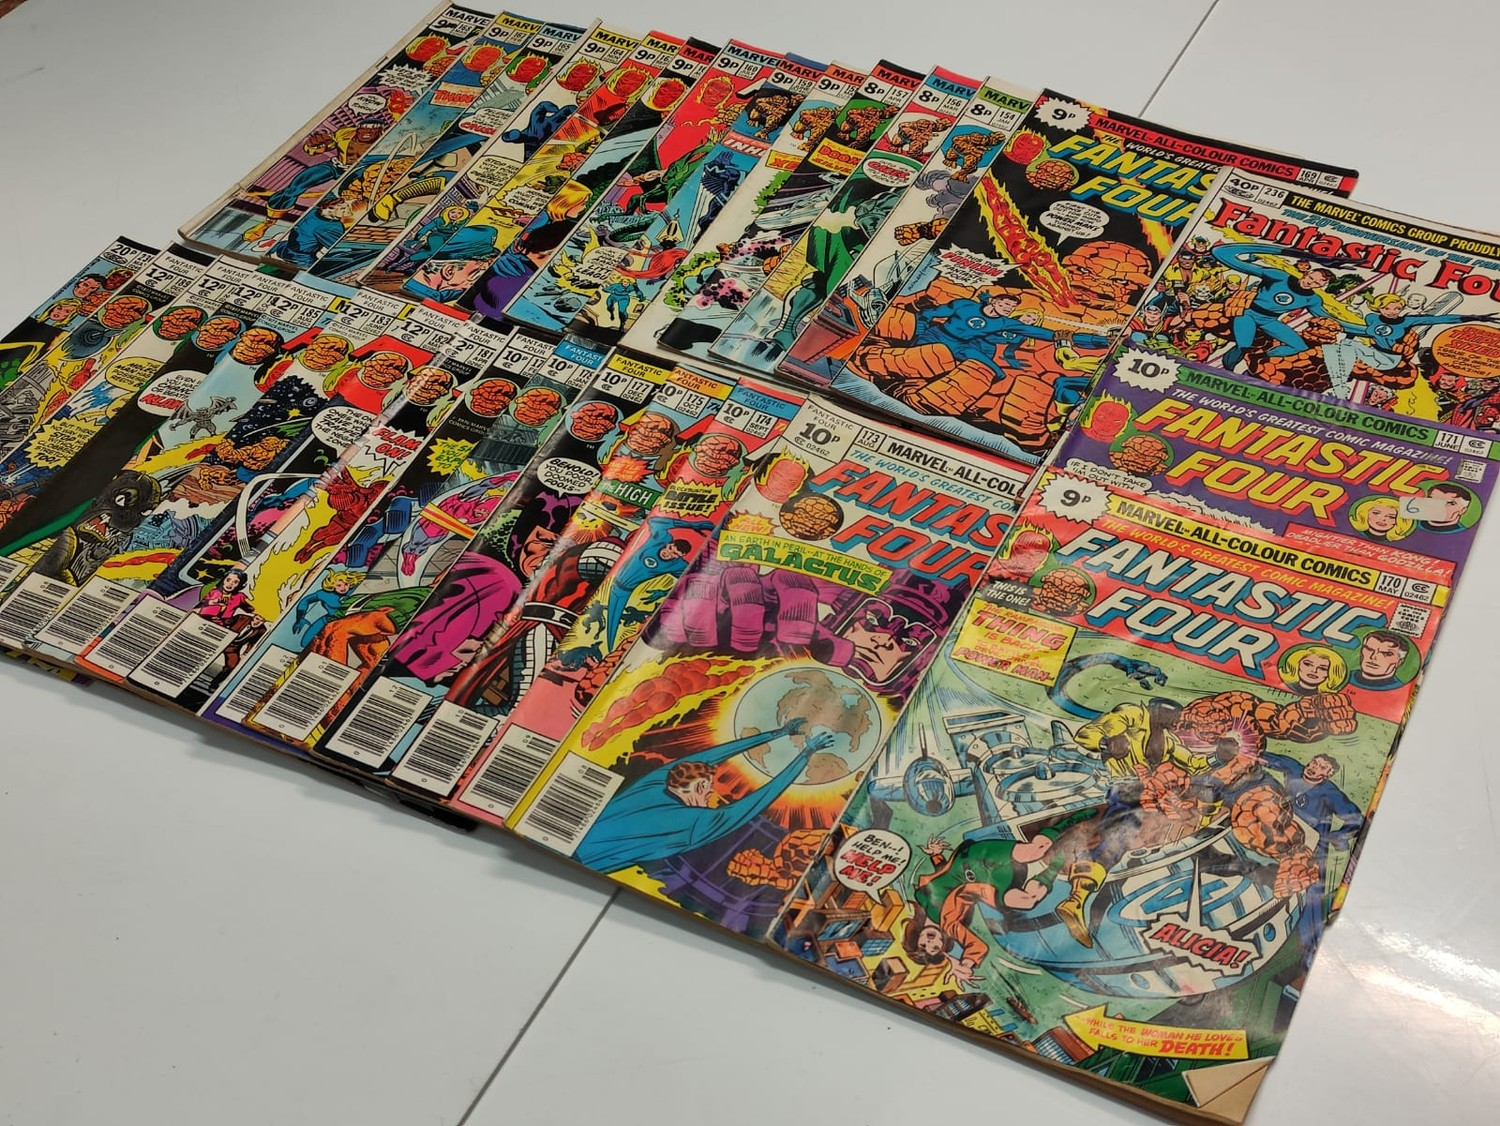 30x Marvel Fantastic four mid 1970s editions. Used, in good condition. - Image 2 of 17